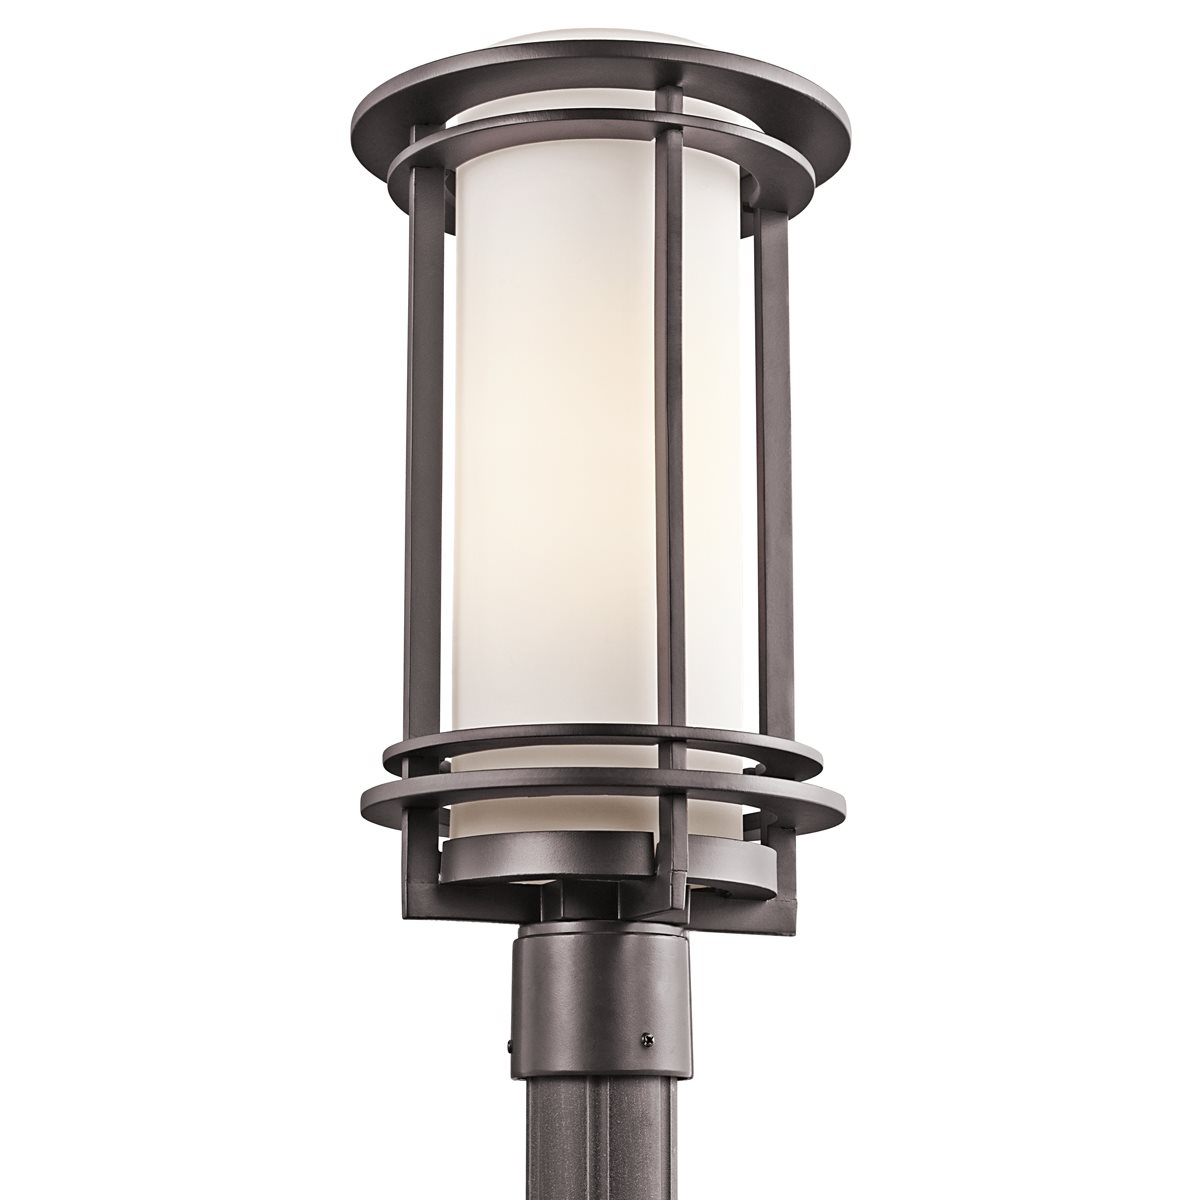 Kichler lighting 49349az pacific edge modern for Landscape lighting products